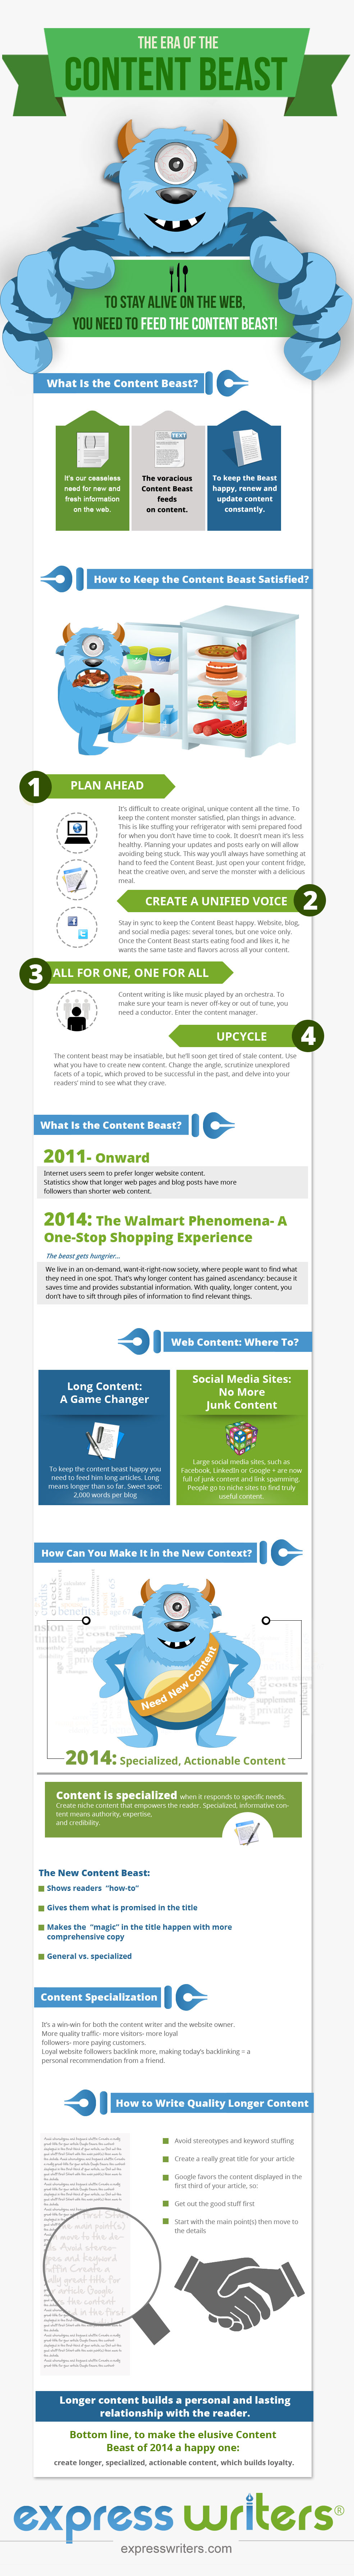 content beast infographic